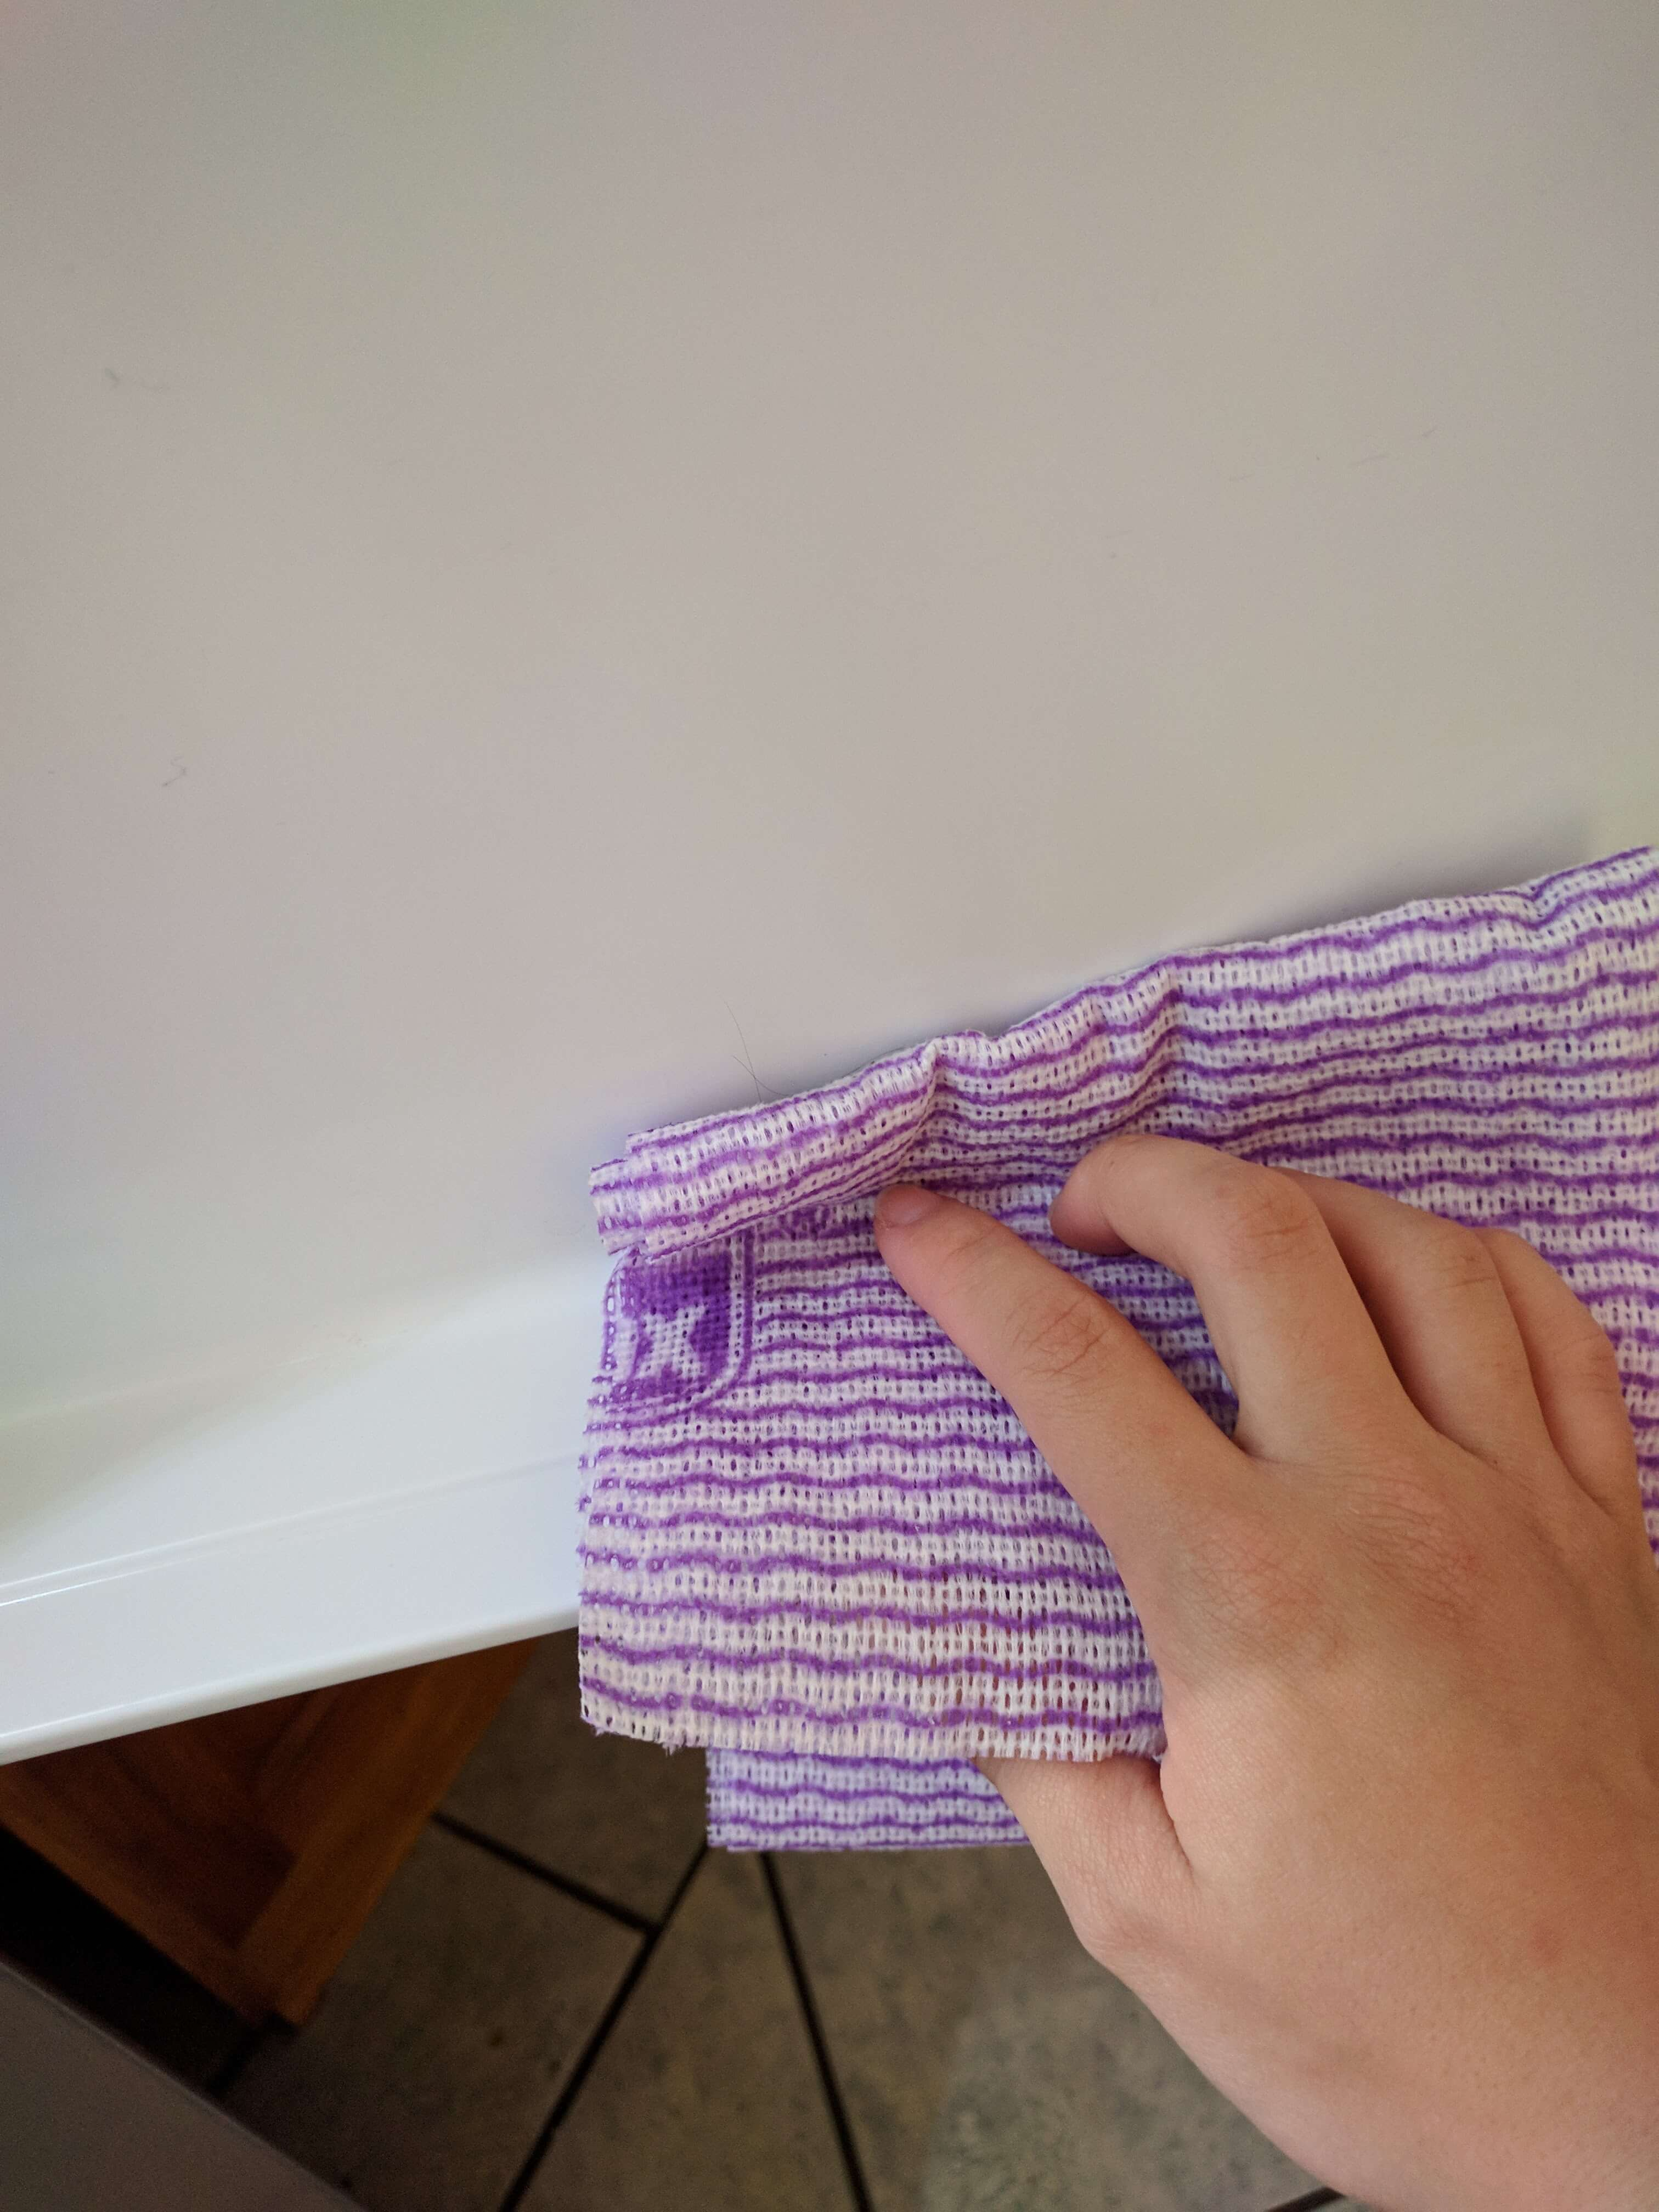 How to clean your fridge - wiping fridge interior 3